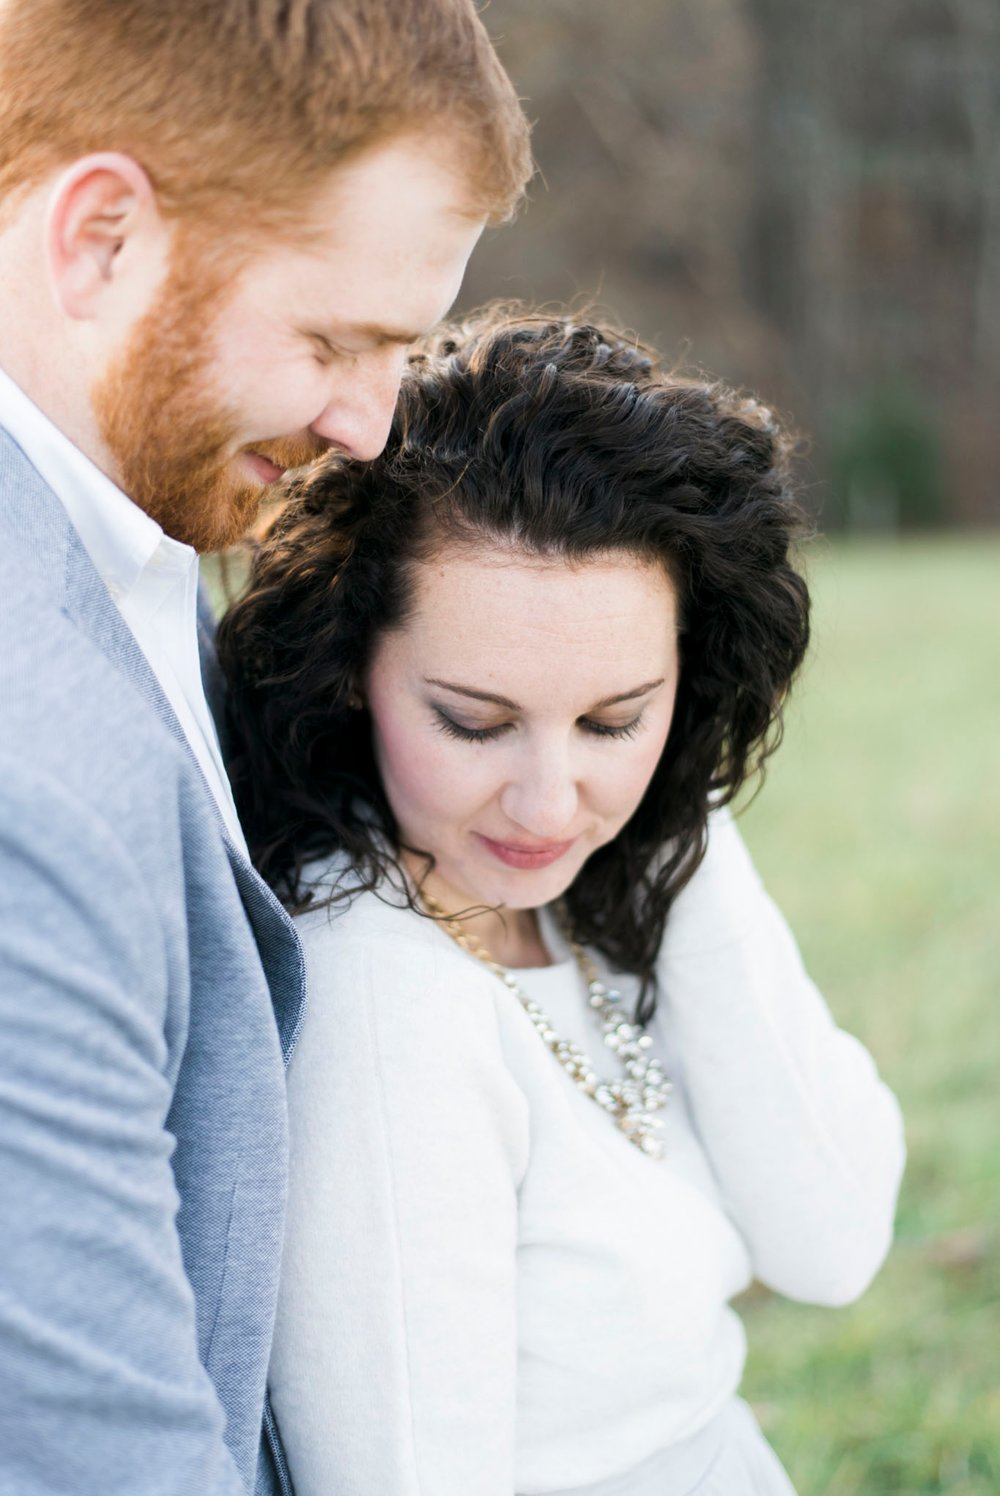 SorellaFarms_EngagementSession_VirginiaweddingPhotographer 35.jpg